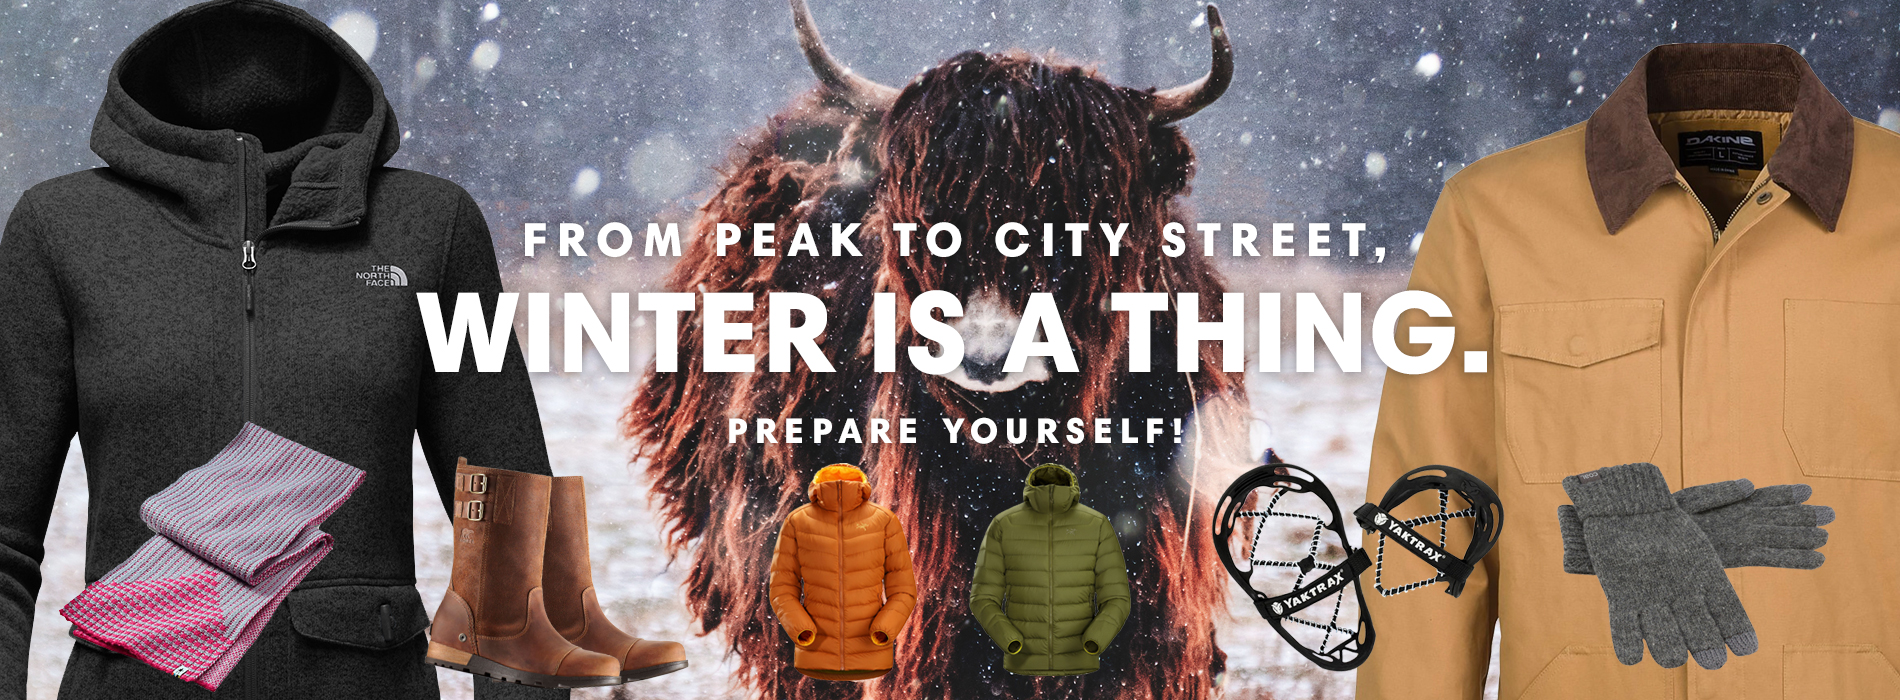 2018 Winter Gear